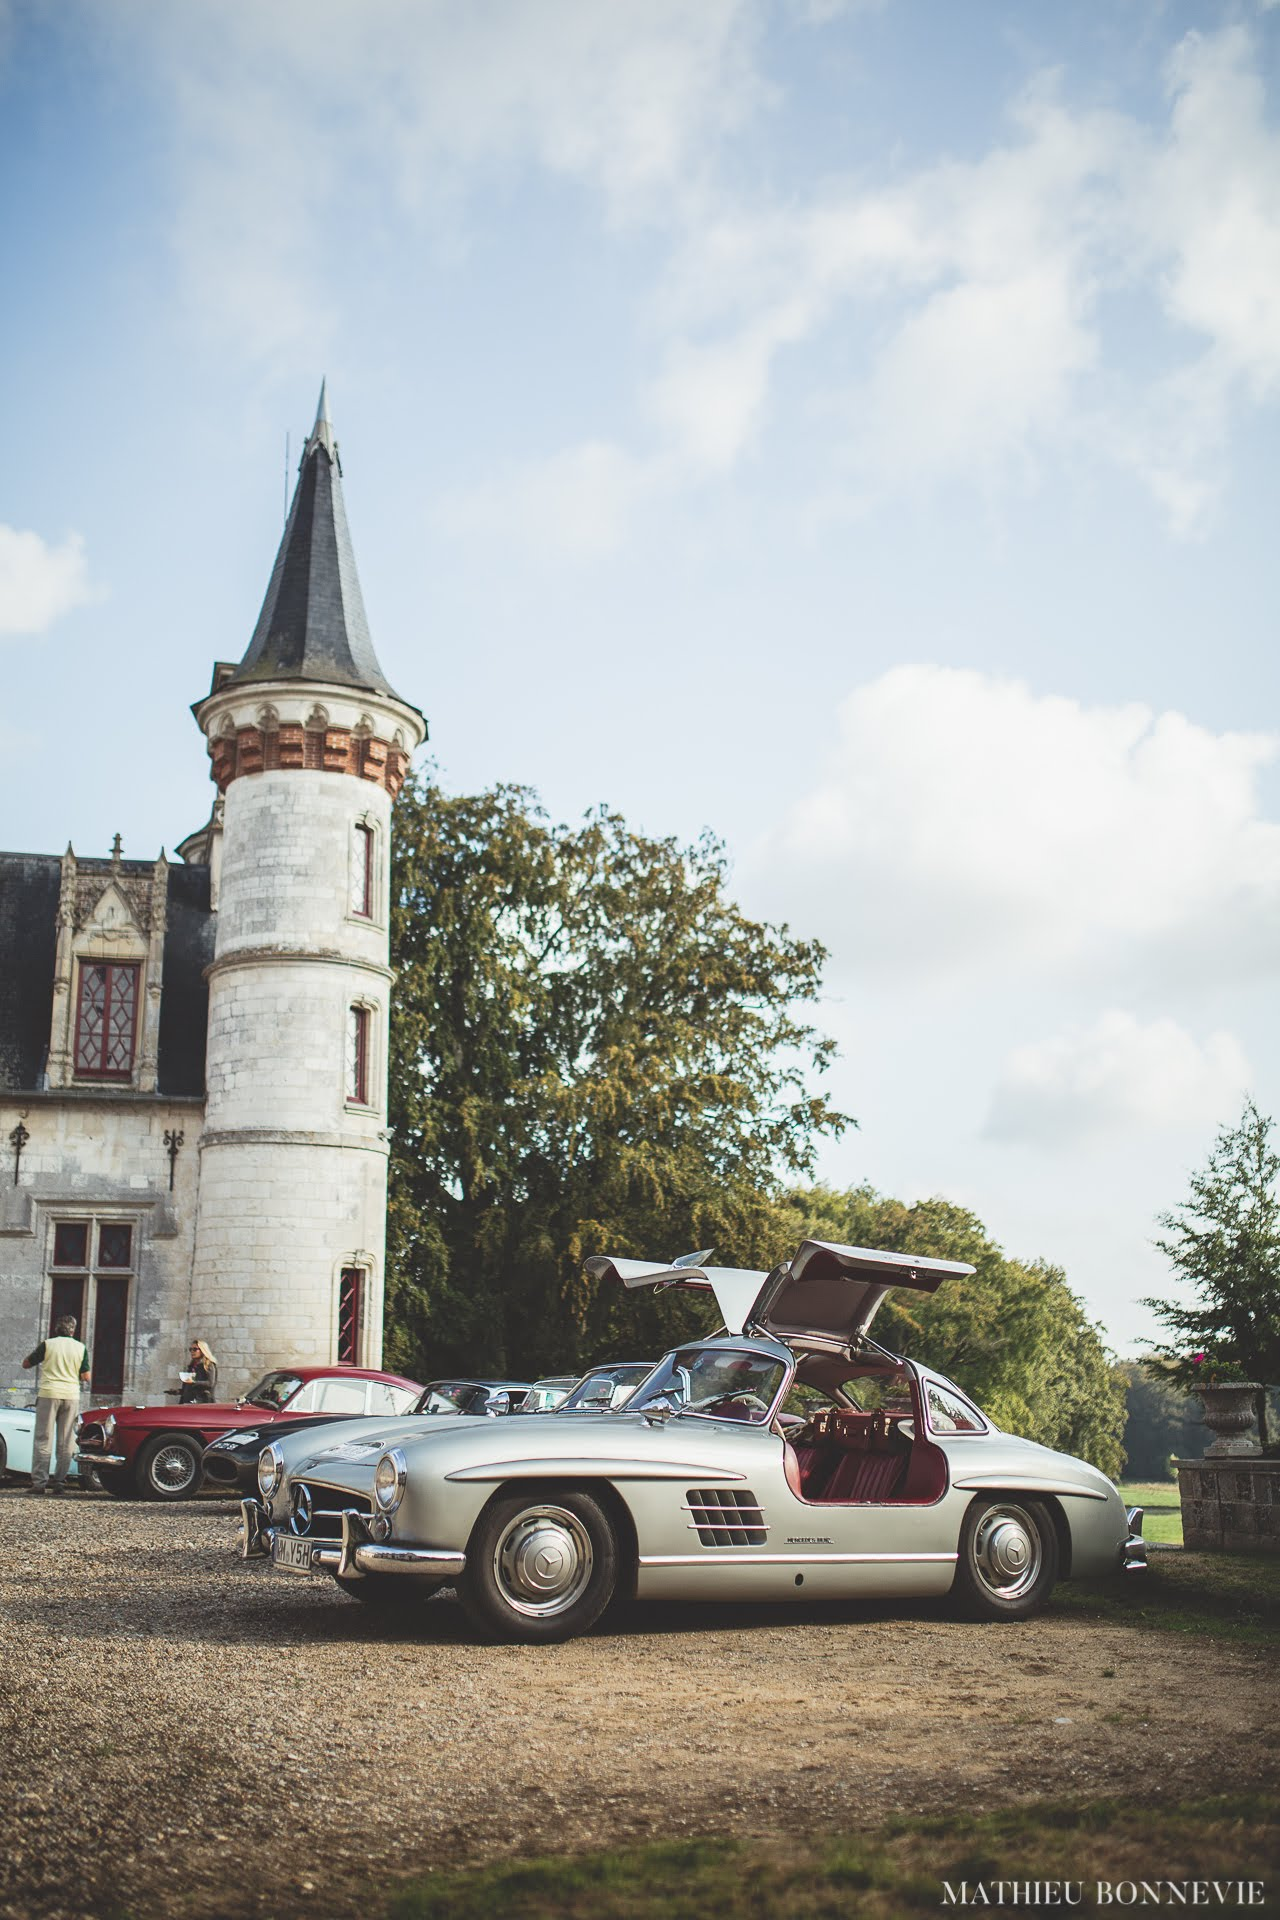 201-goodwoodrevival18-01524-copyright-Mathieu-Bonnevie-1920